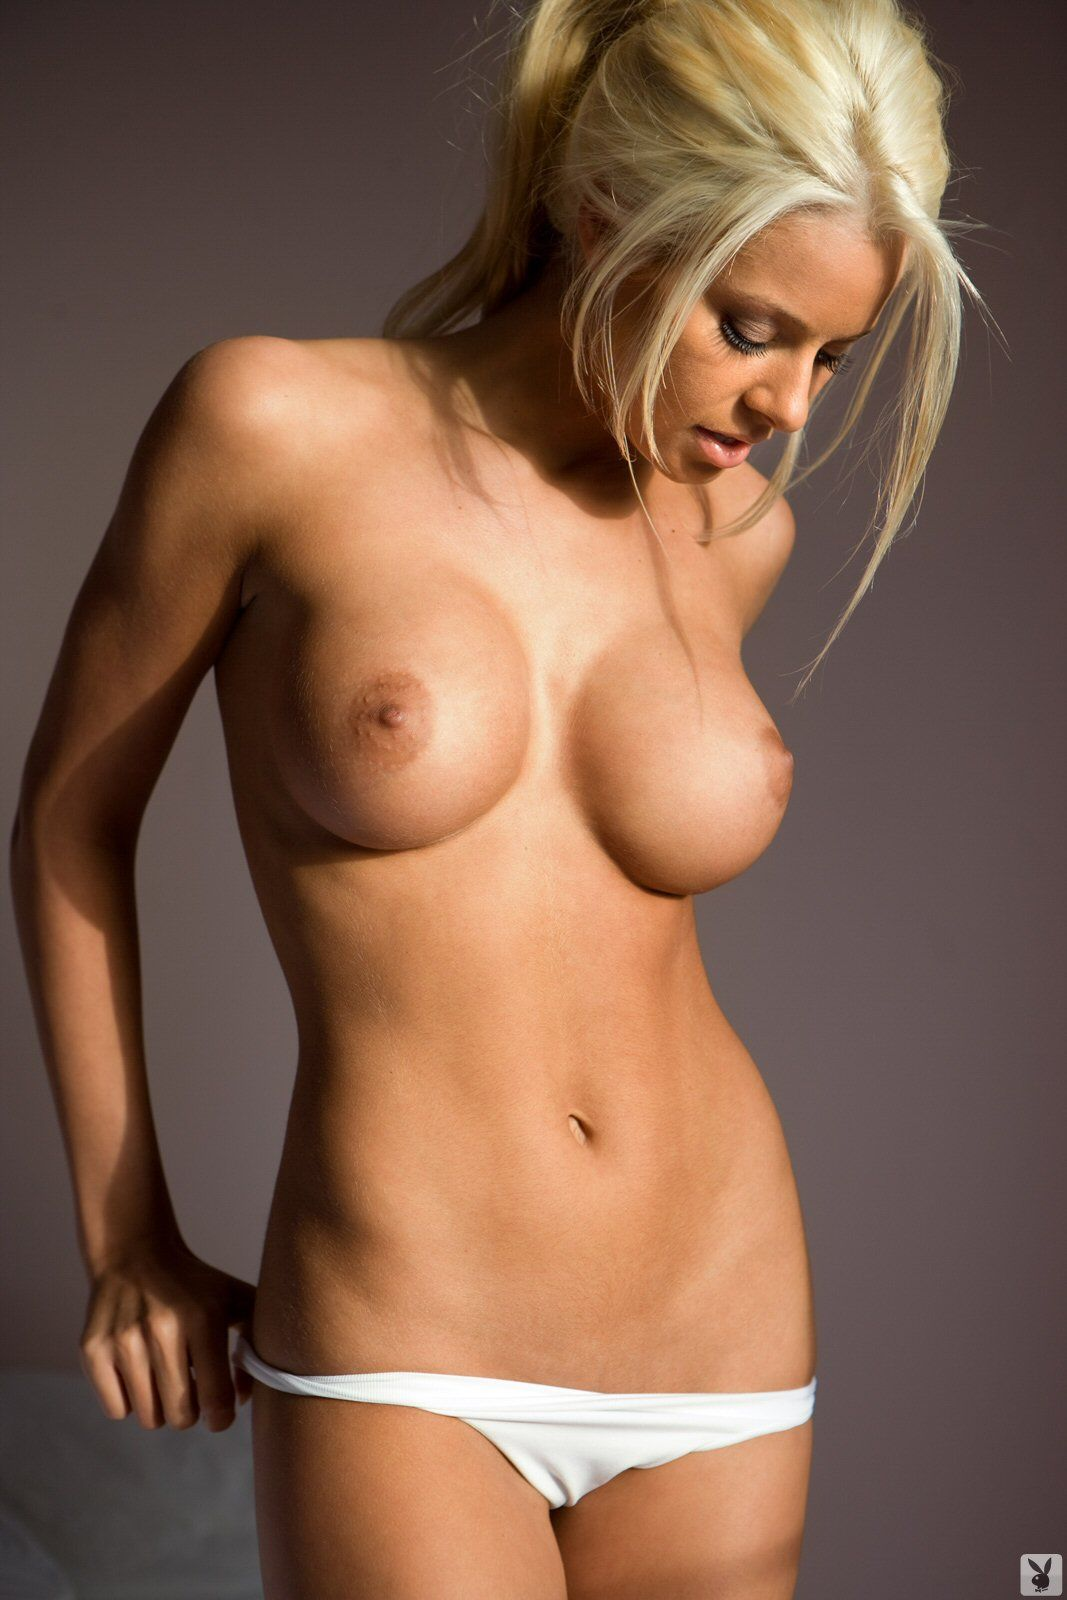 Nude Photos Of Maryse Oue...